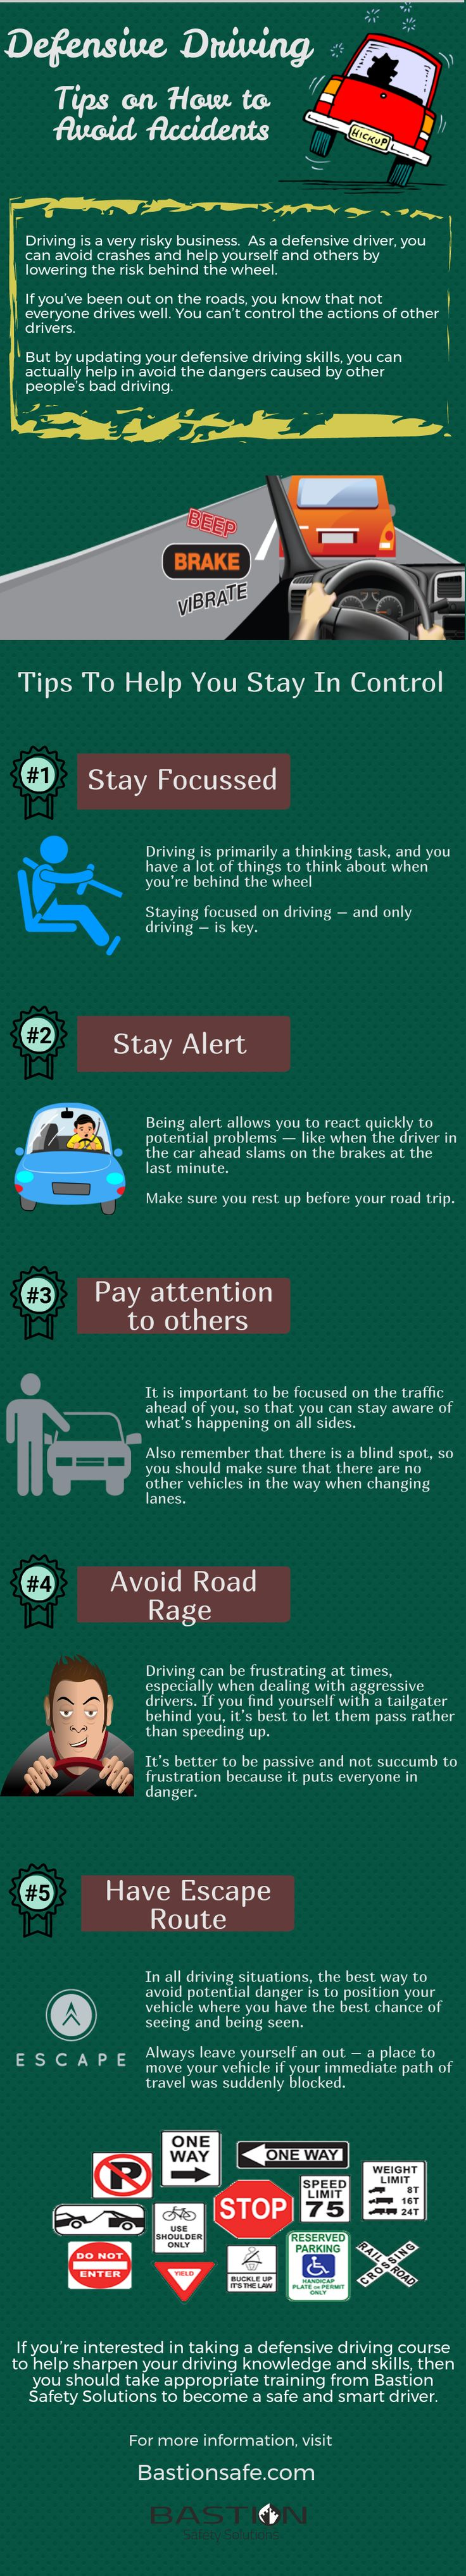 Learn how to #Drive Defensively. In this #infographic we describe the basics of #safe #driving tips to avoid accidents on #road